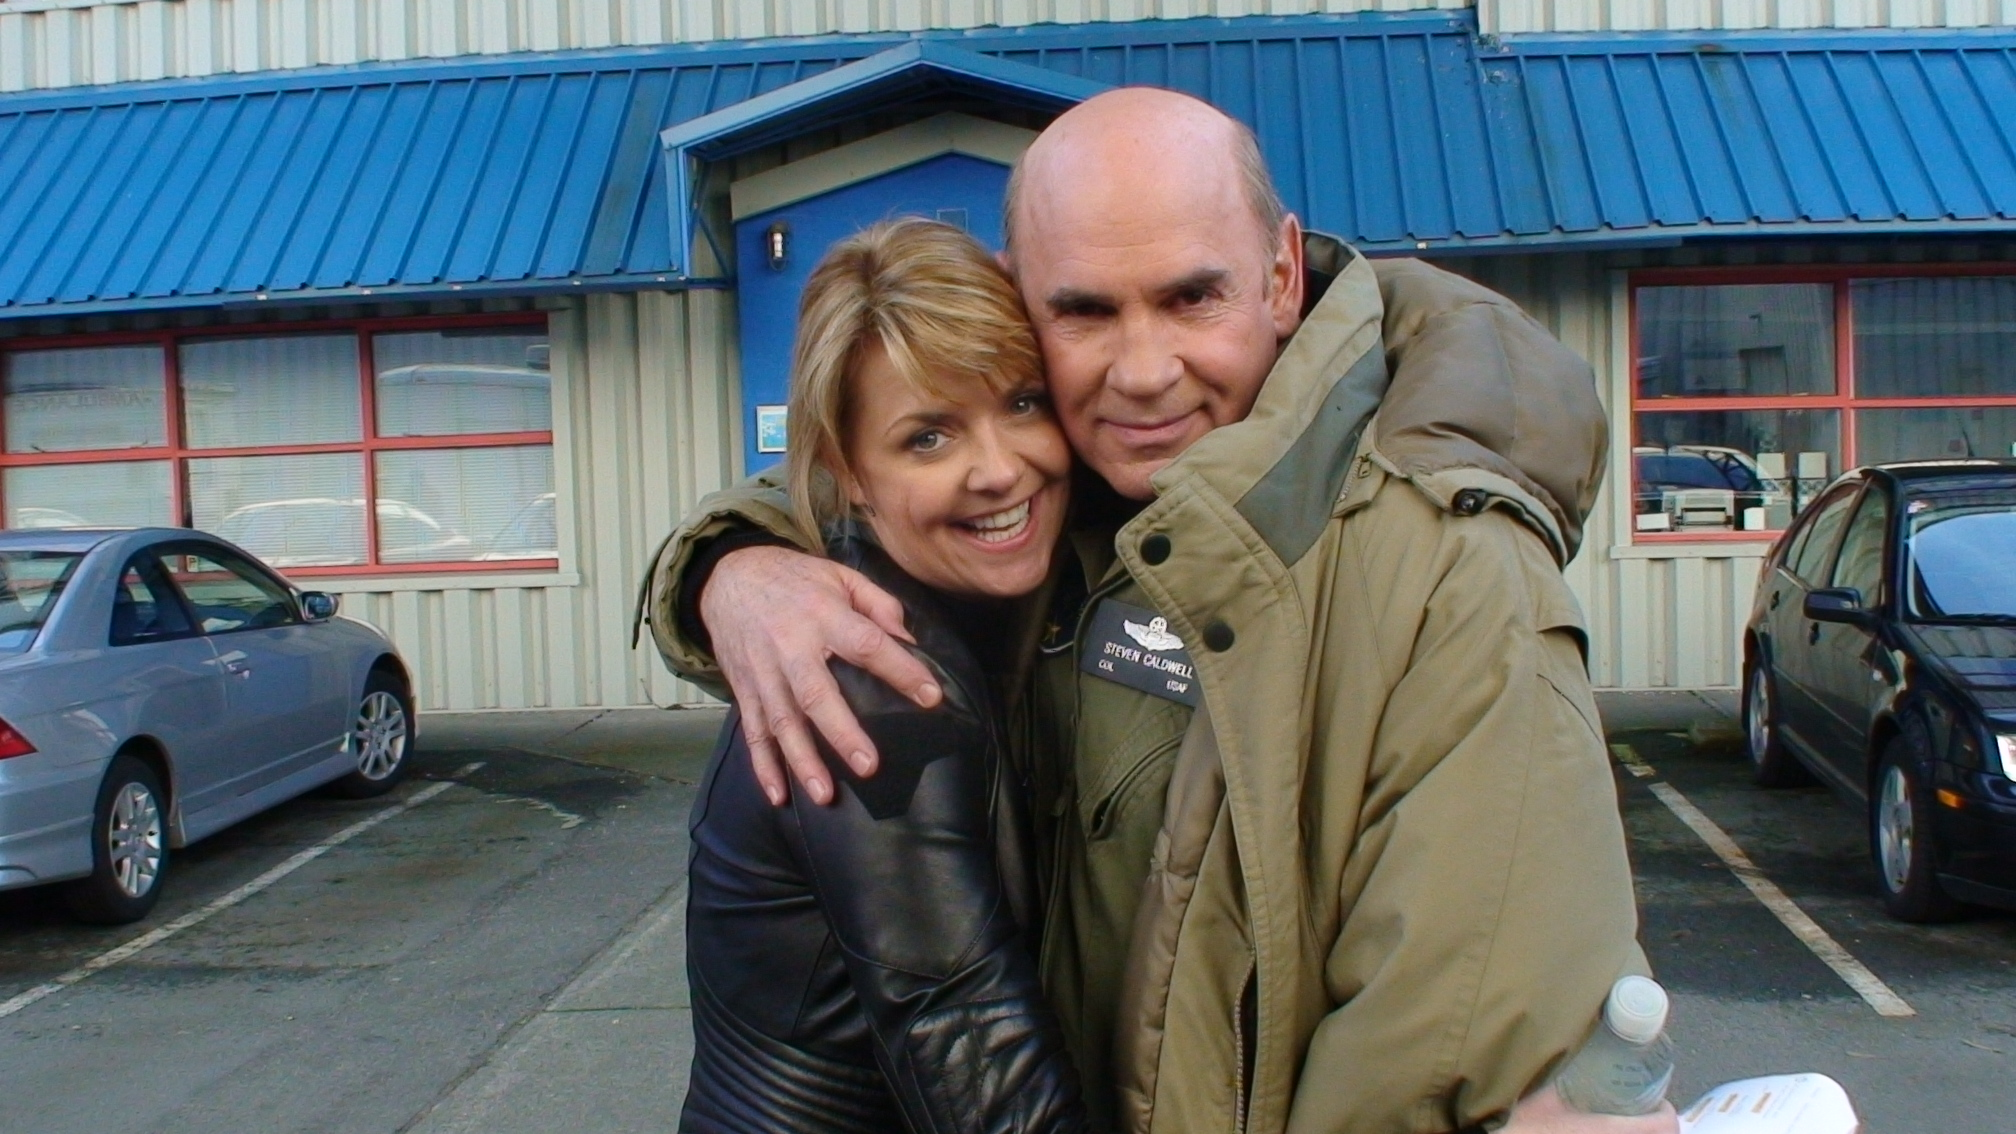 Amanda Tapping X Files sam carter/amanda tapping thunk thread [archive] - page 41